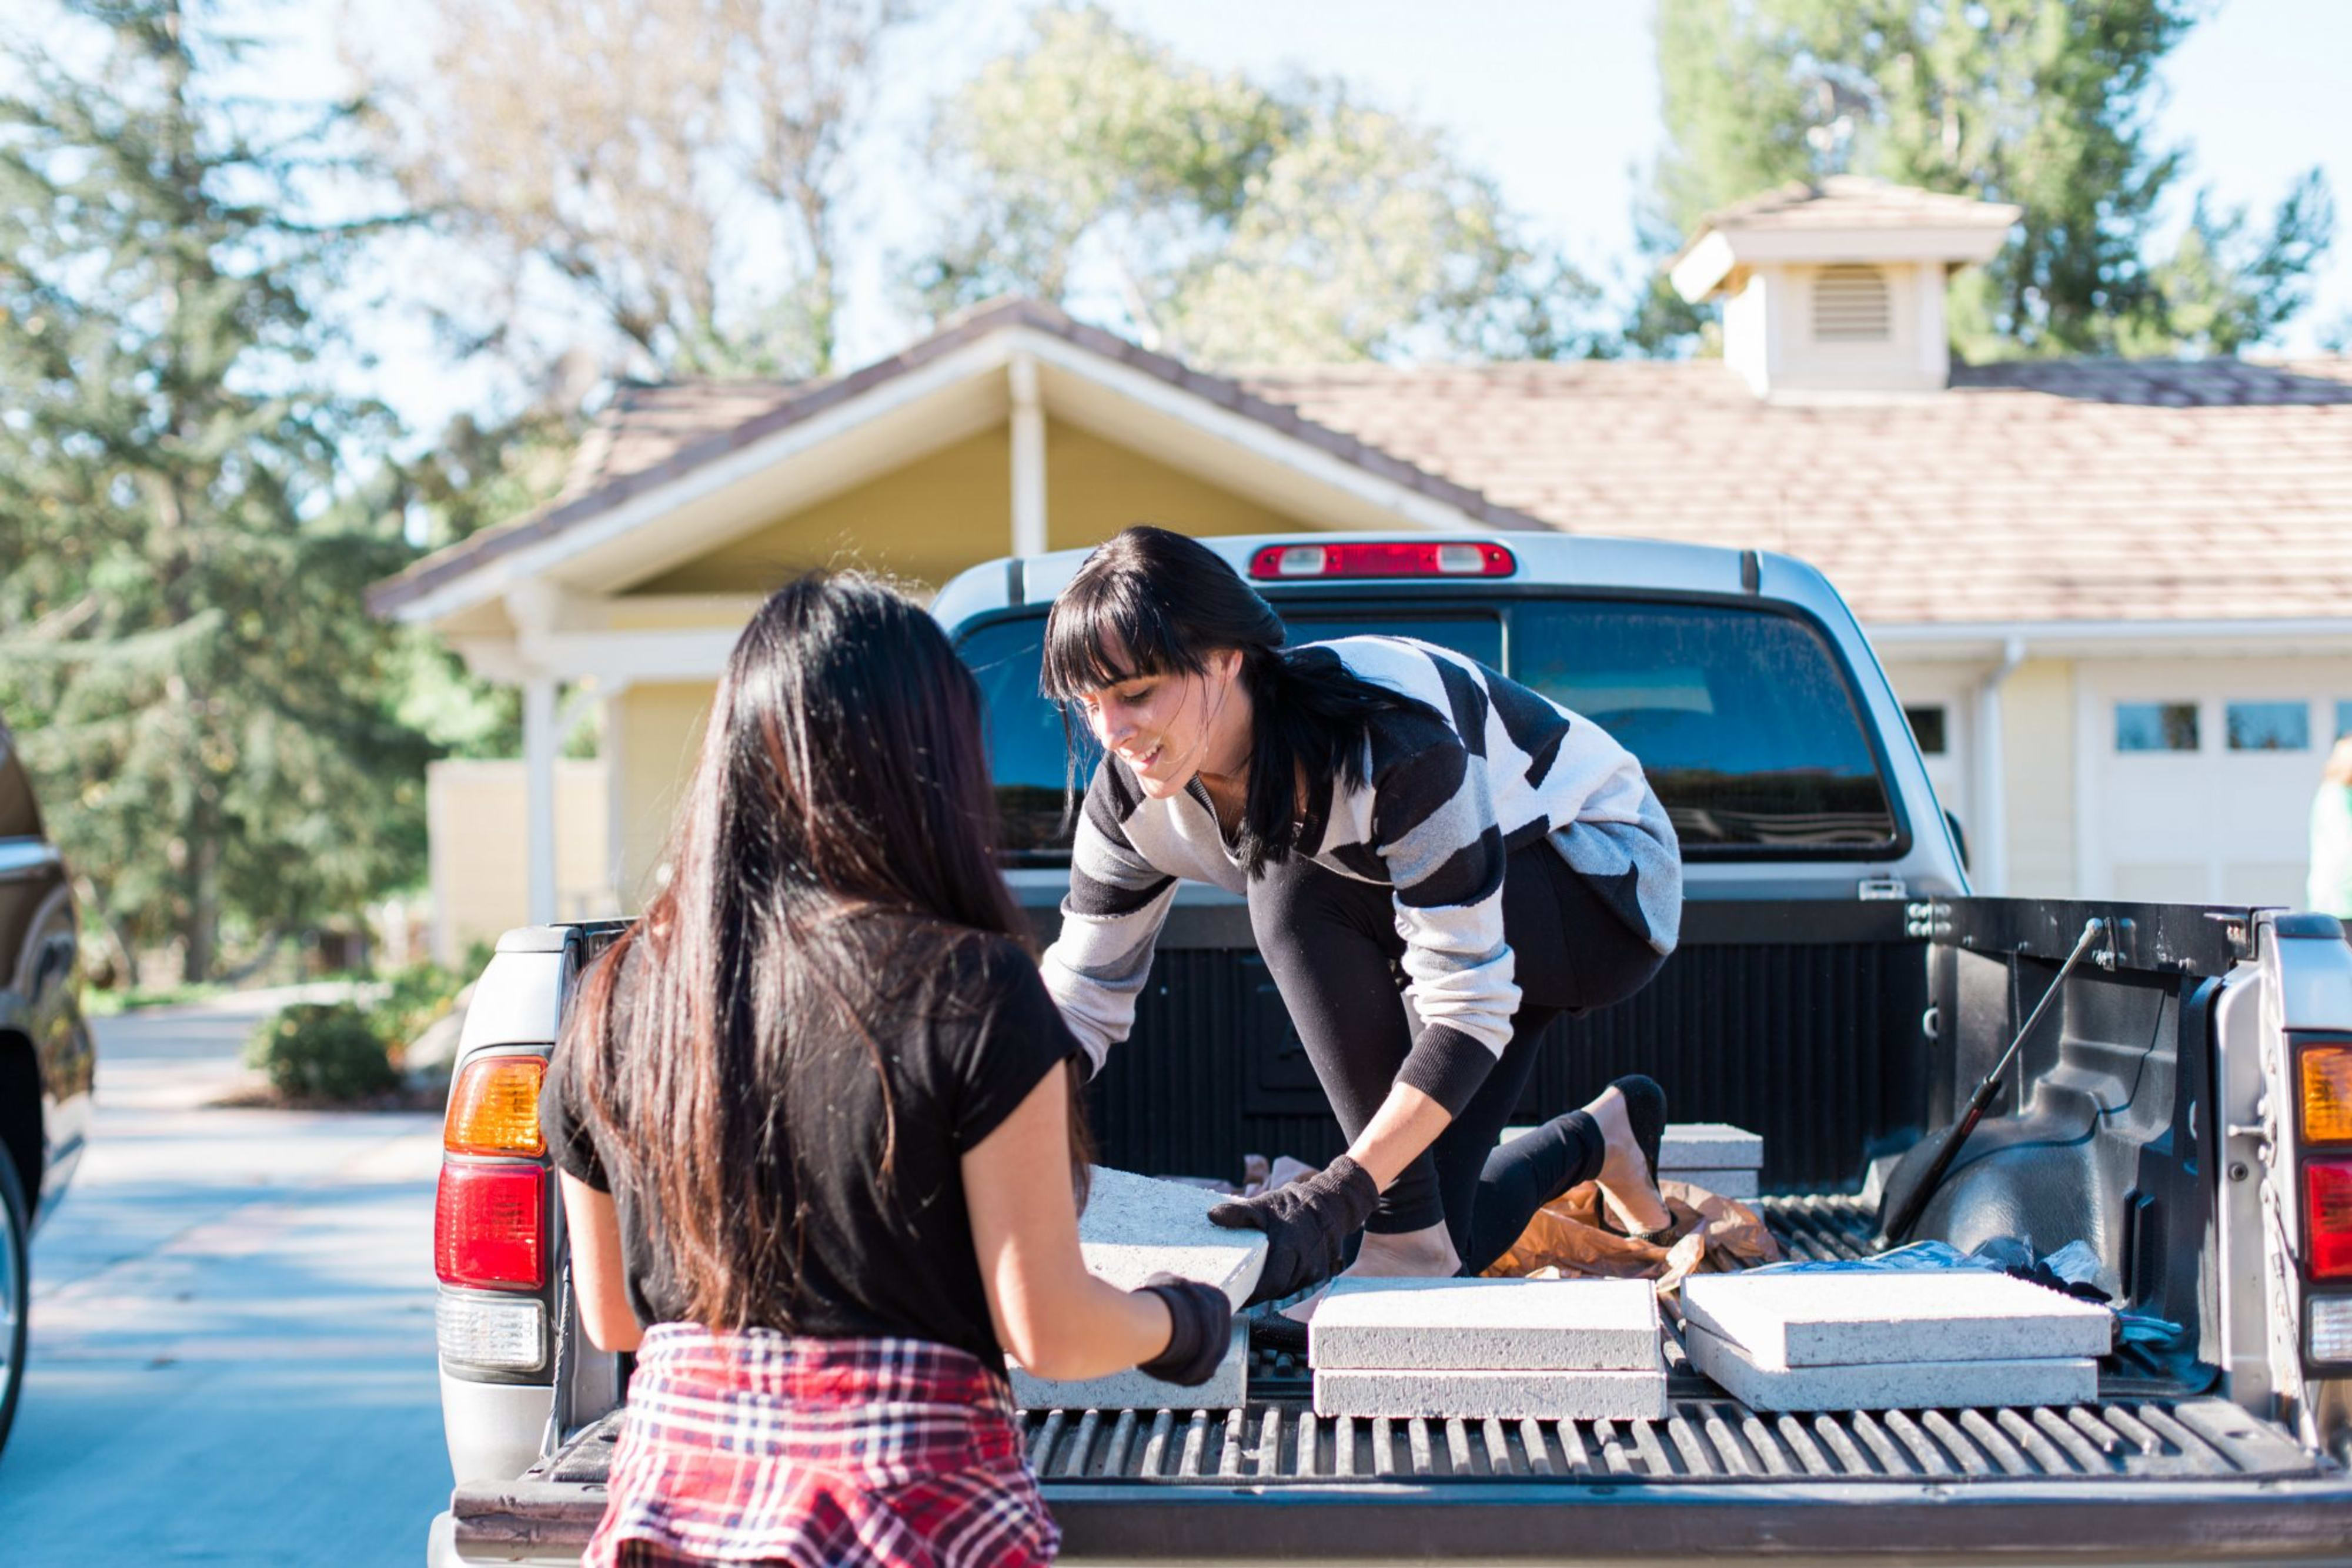 Our Temecula Valley, CA group helped fix up Jacob's House. Photos by Jenna Joseph Photography.